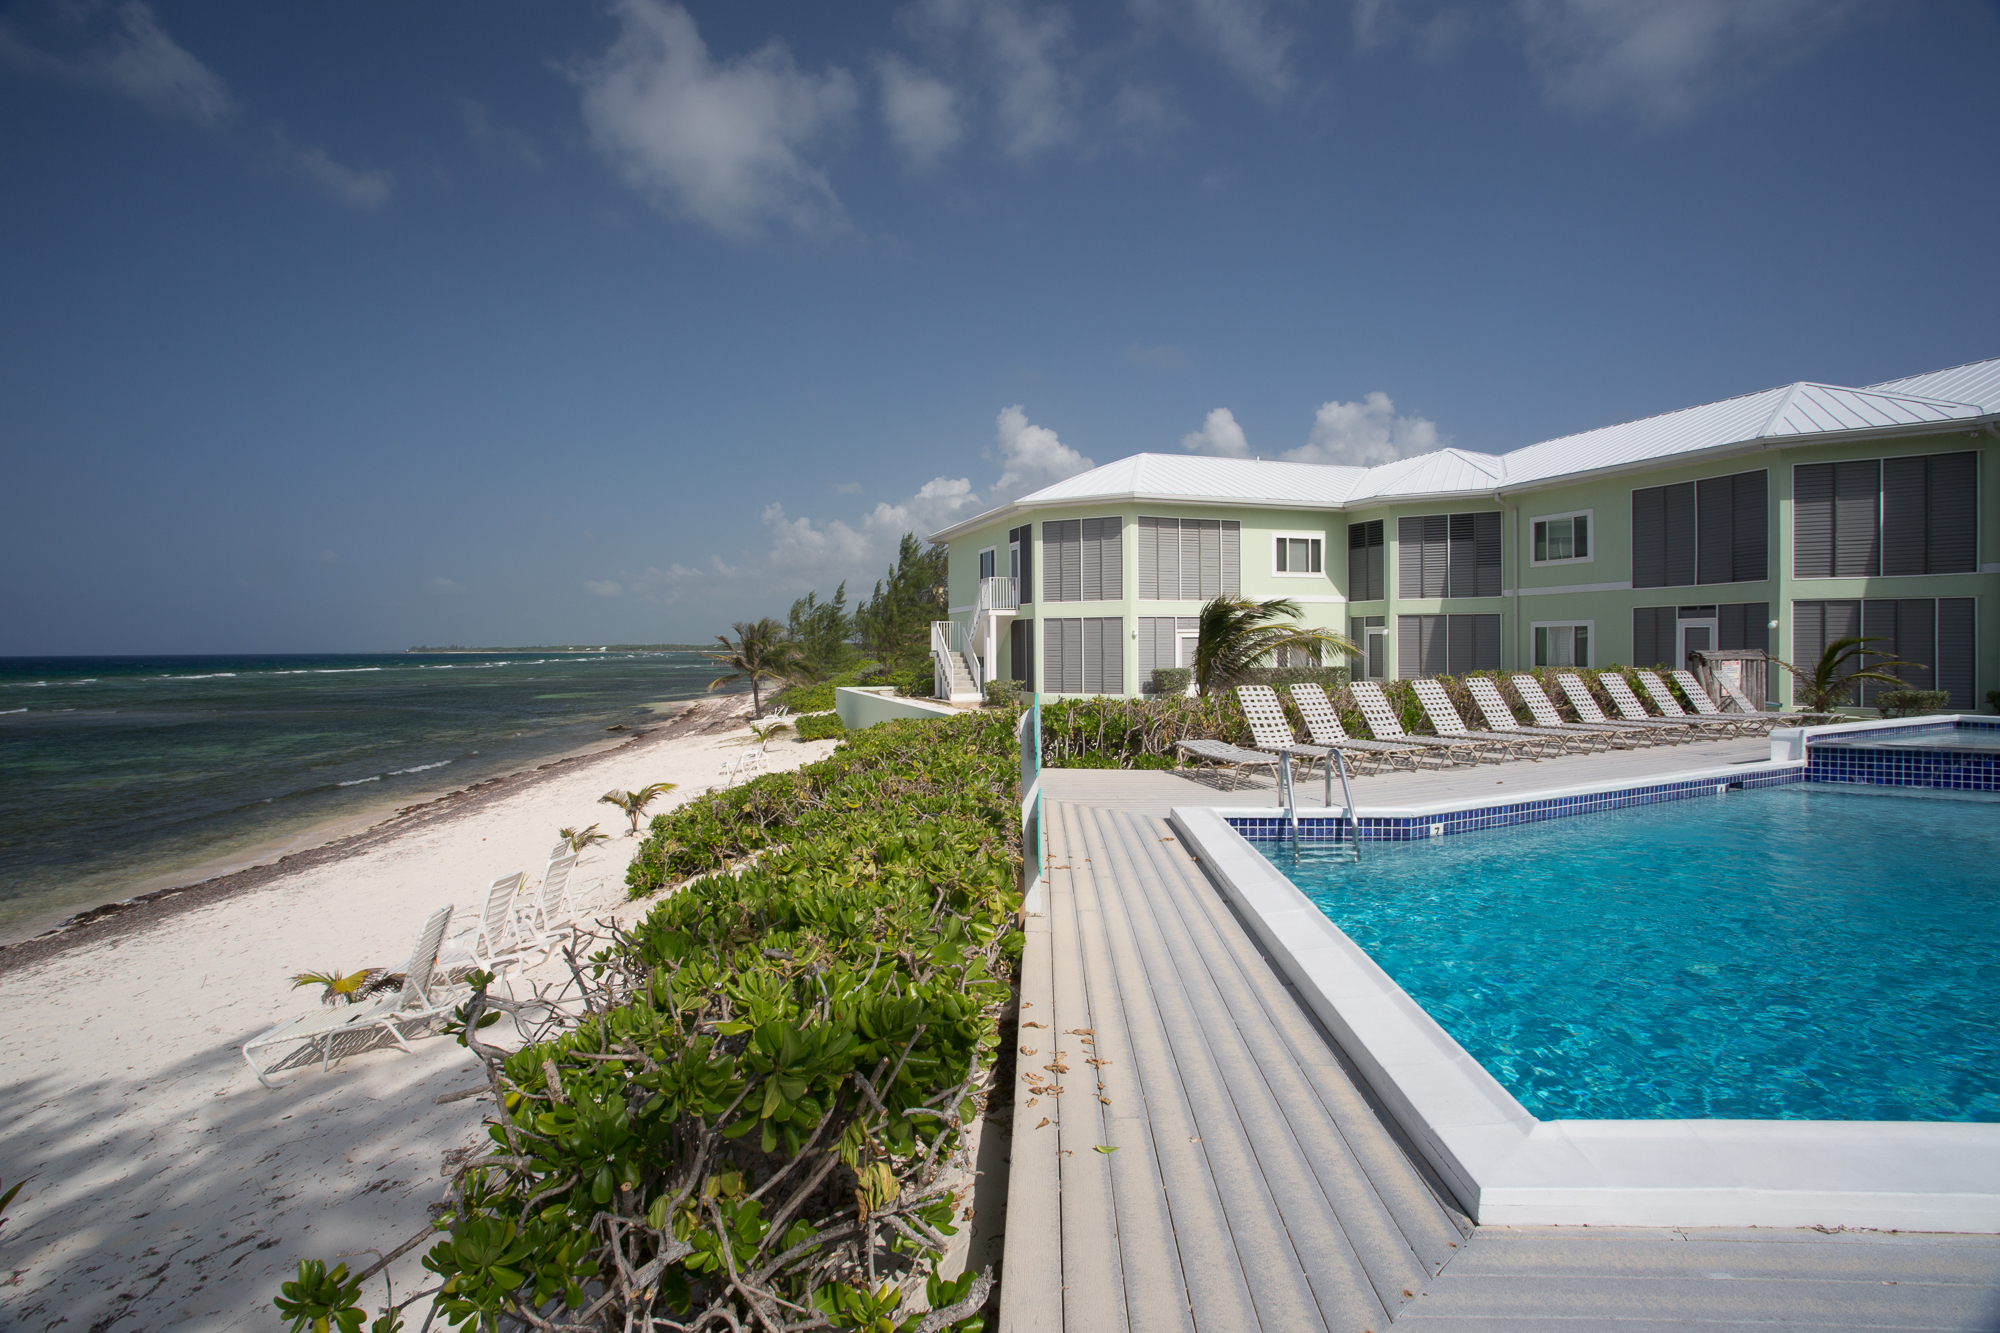 Single Family Home for Sale at North Pointe Condos Rum Point, Cayman Islands